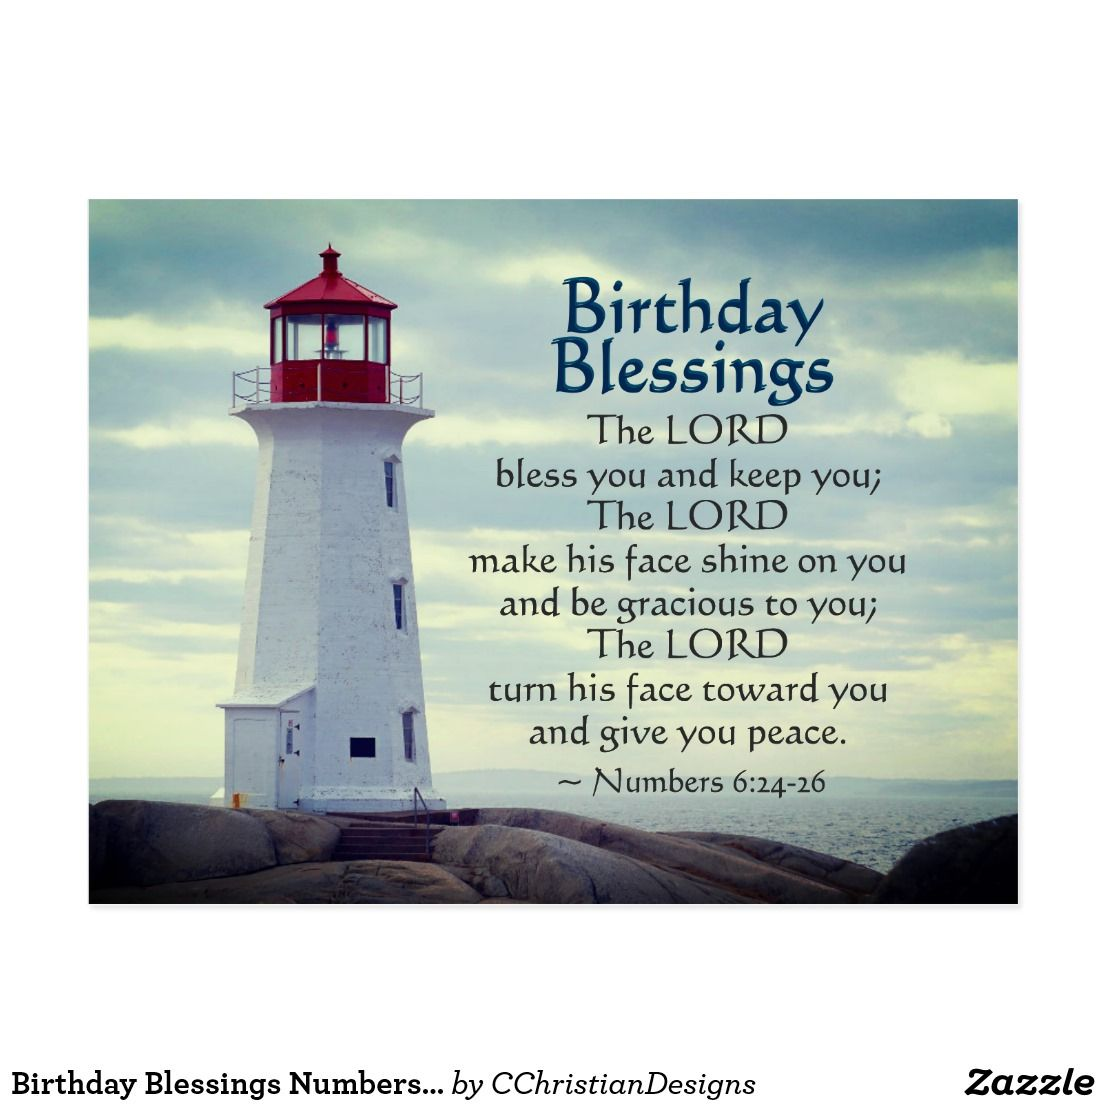 Birthday Blessings Numbers 6 24 26 Lighthouse Postcard Zazzle Com Birthday Blessings Birthday Blessings Christian Christian Birthday Wishes